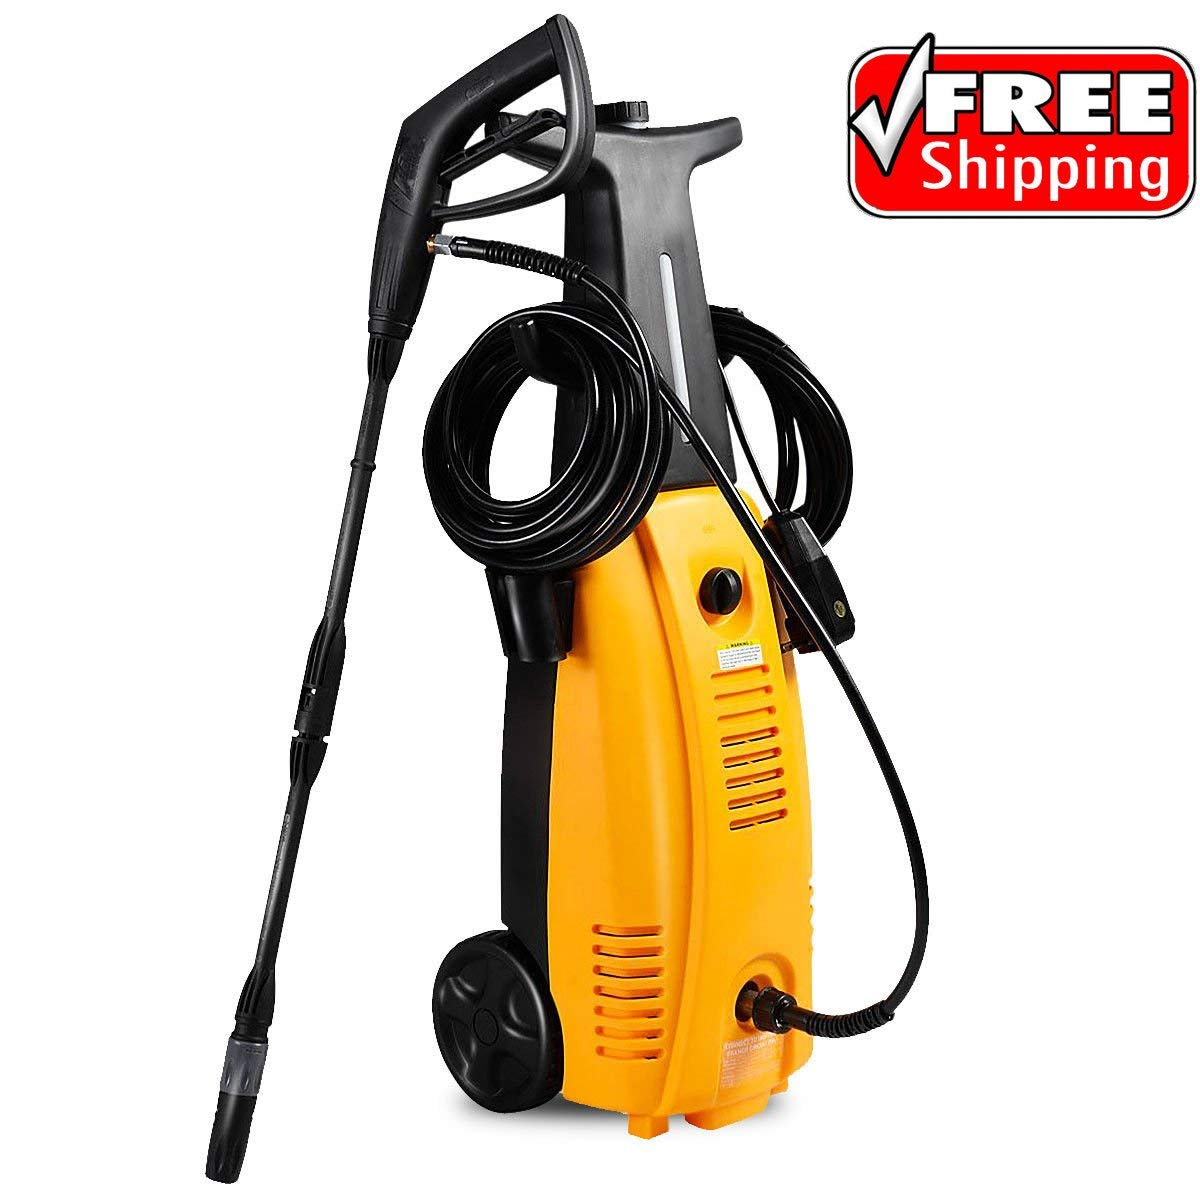 Okapi Washer Burst Sprayer Electric High Pressure Built Detergent HD Cleaning Car Sidewalk Deck